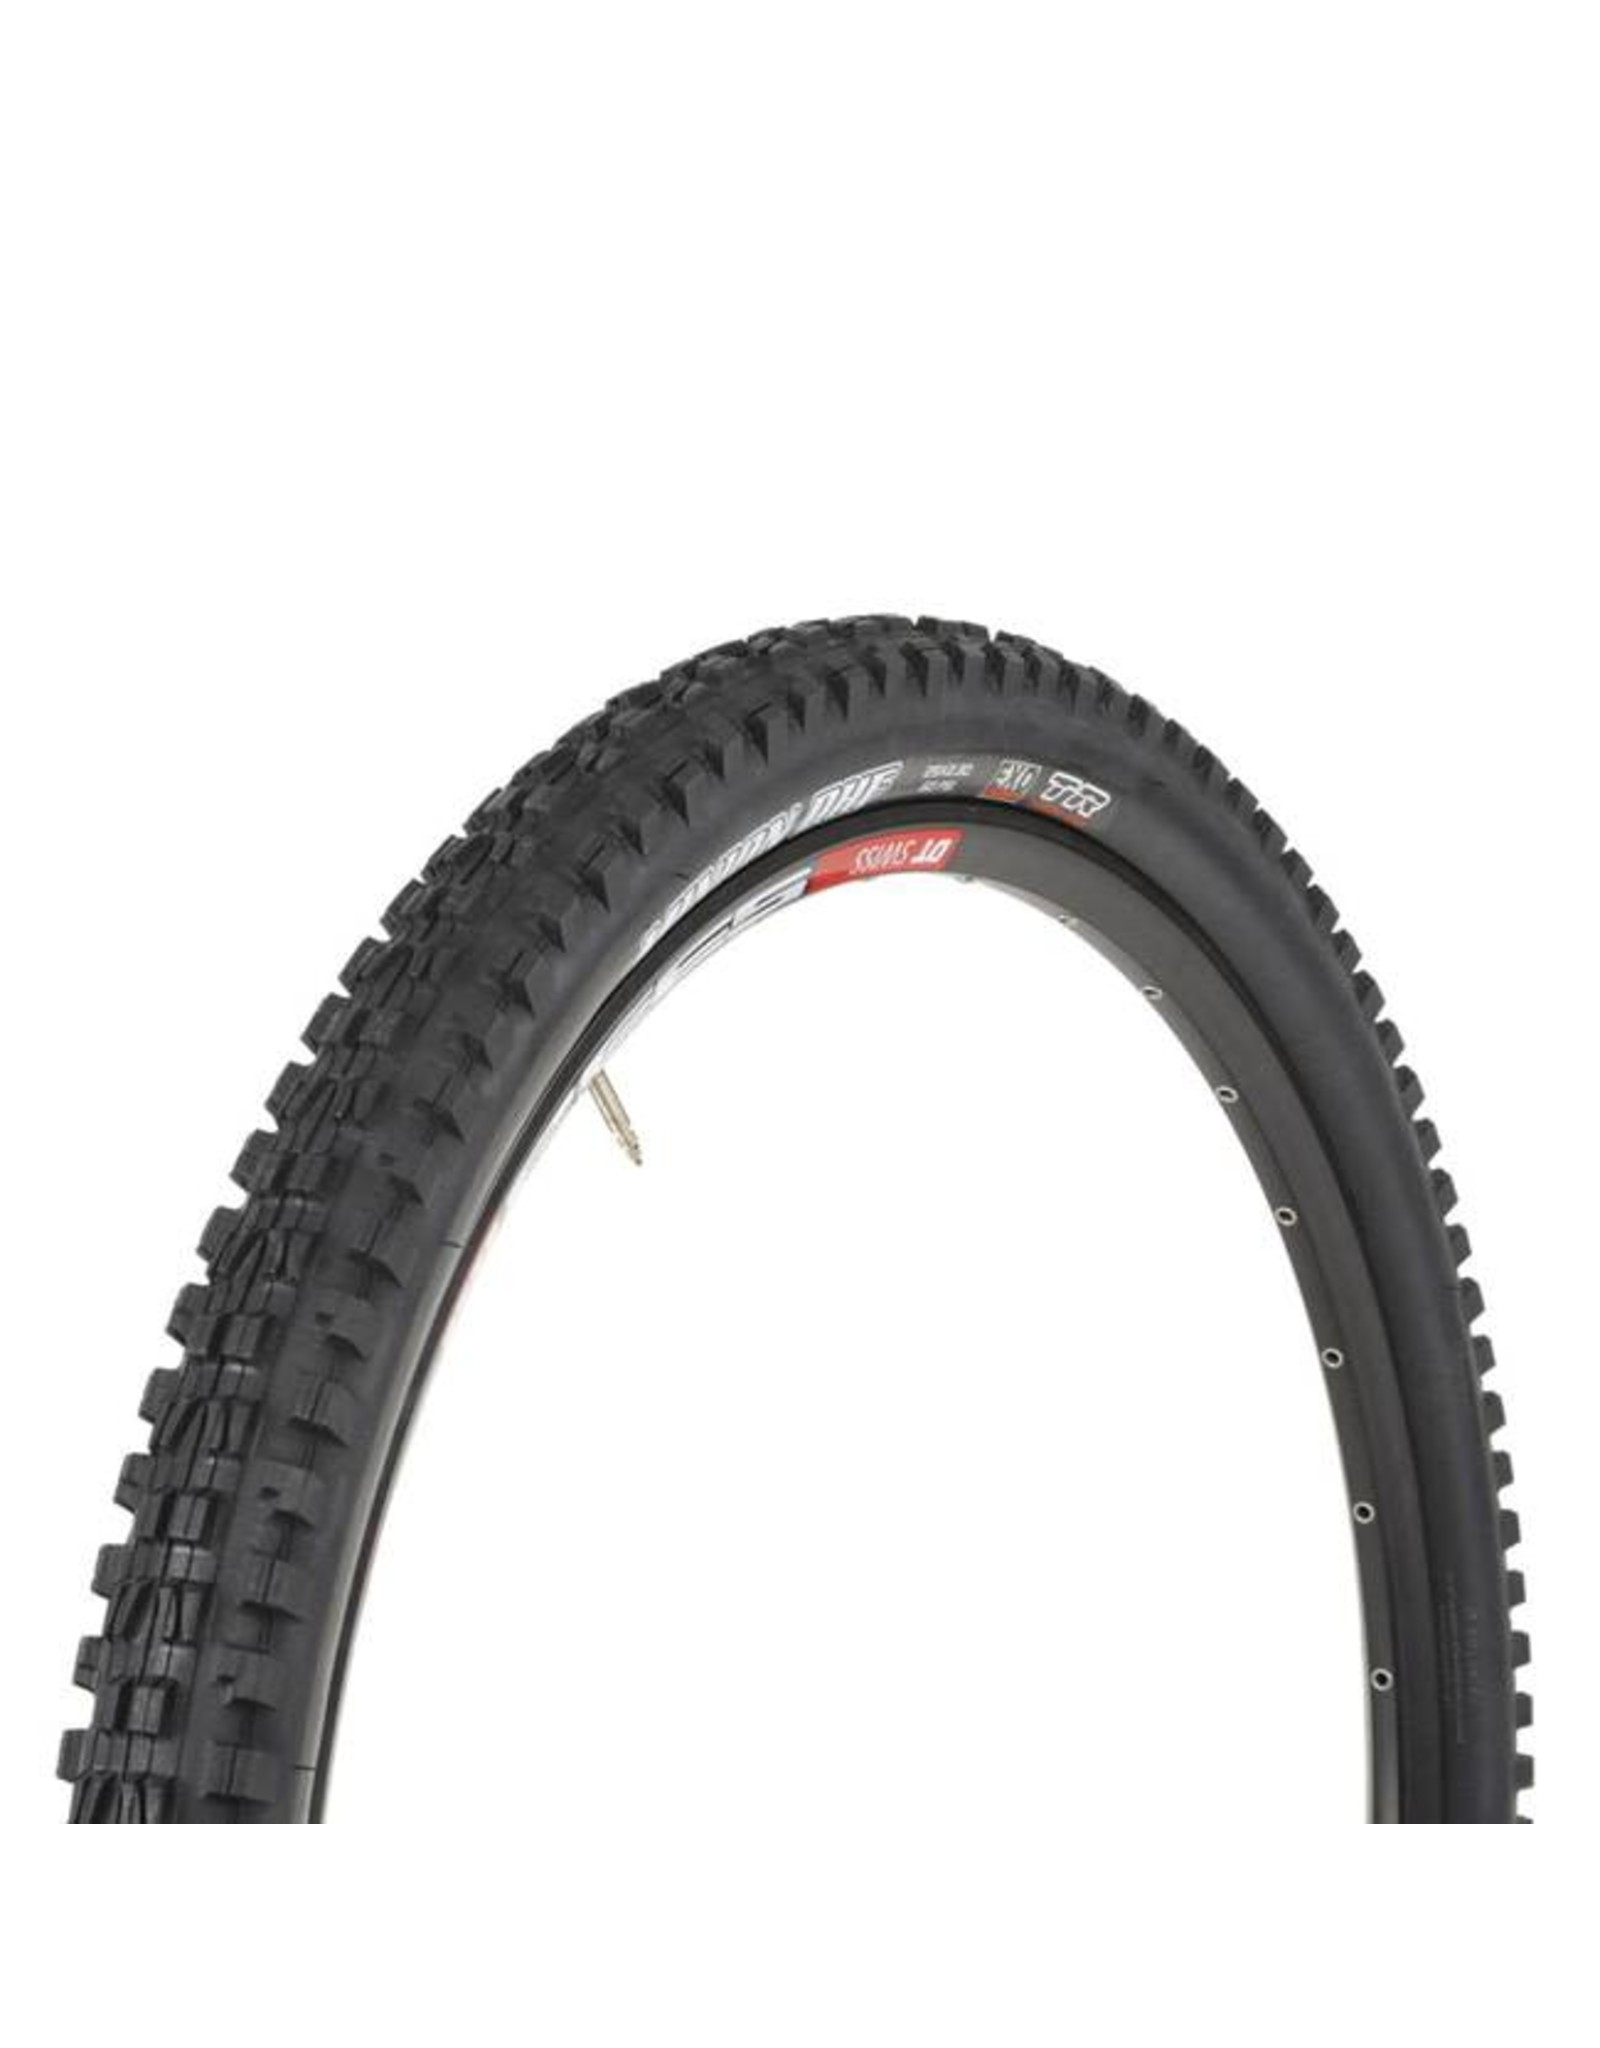 "Maxxis Maxxis Minion DHF Tire: 29 x 2.30"", Folding, 60tpi, Dual Compound, EXO, Tubeless Ready, Black"